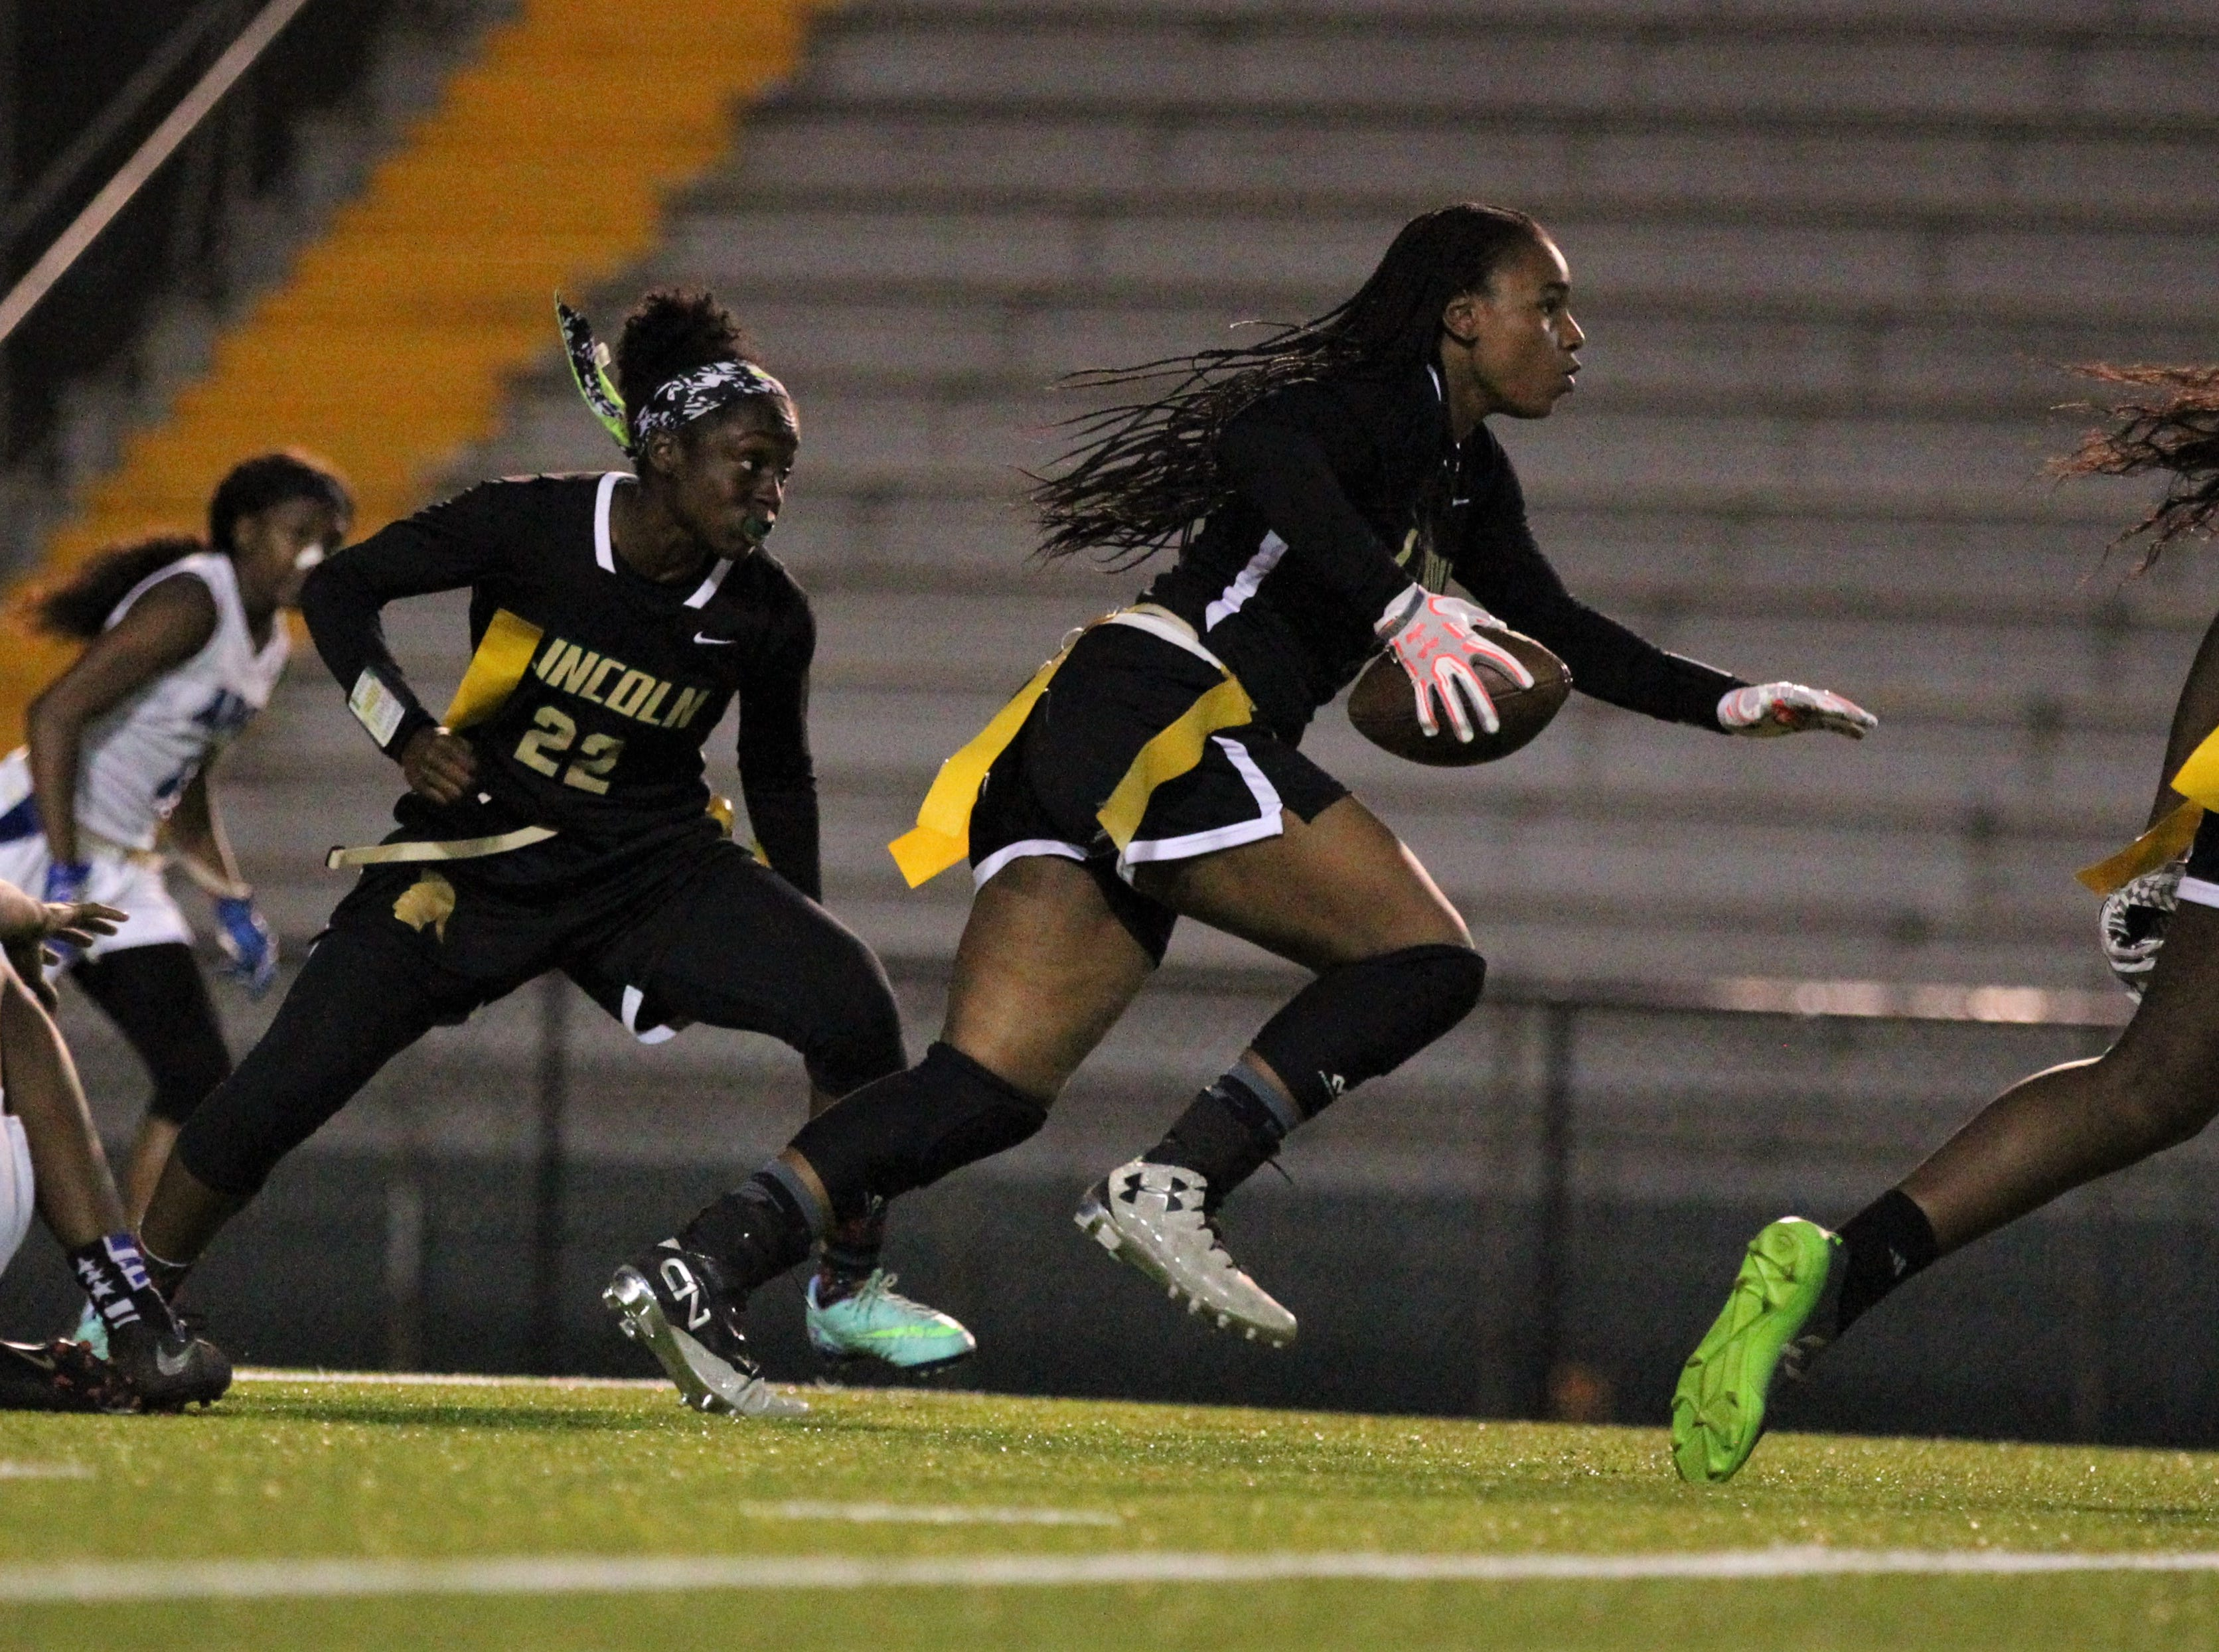 Lincoln's Erin Turral runs upfield after an interception as Godby's flag football team beat Lincoln 25-6 at Gene Cox Stadium on March 14, 2019.